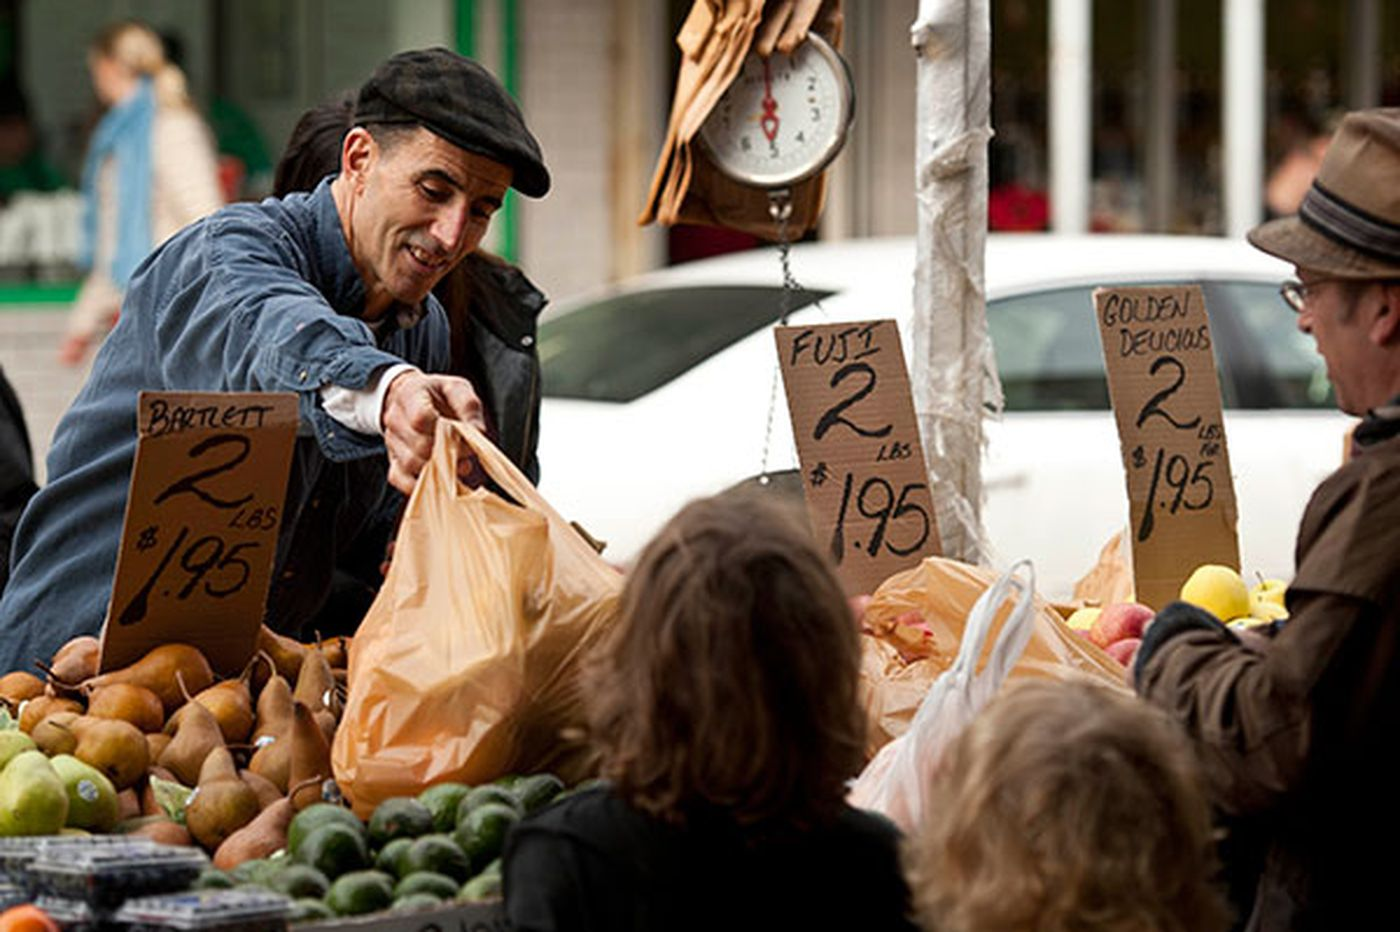 Lawyer cultivates business at Italian Market